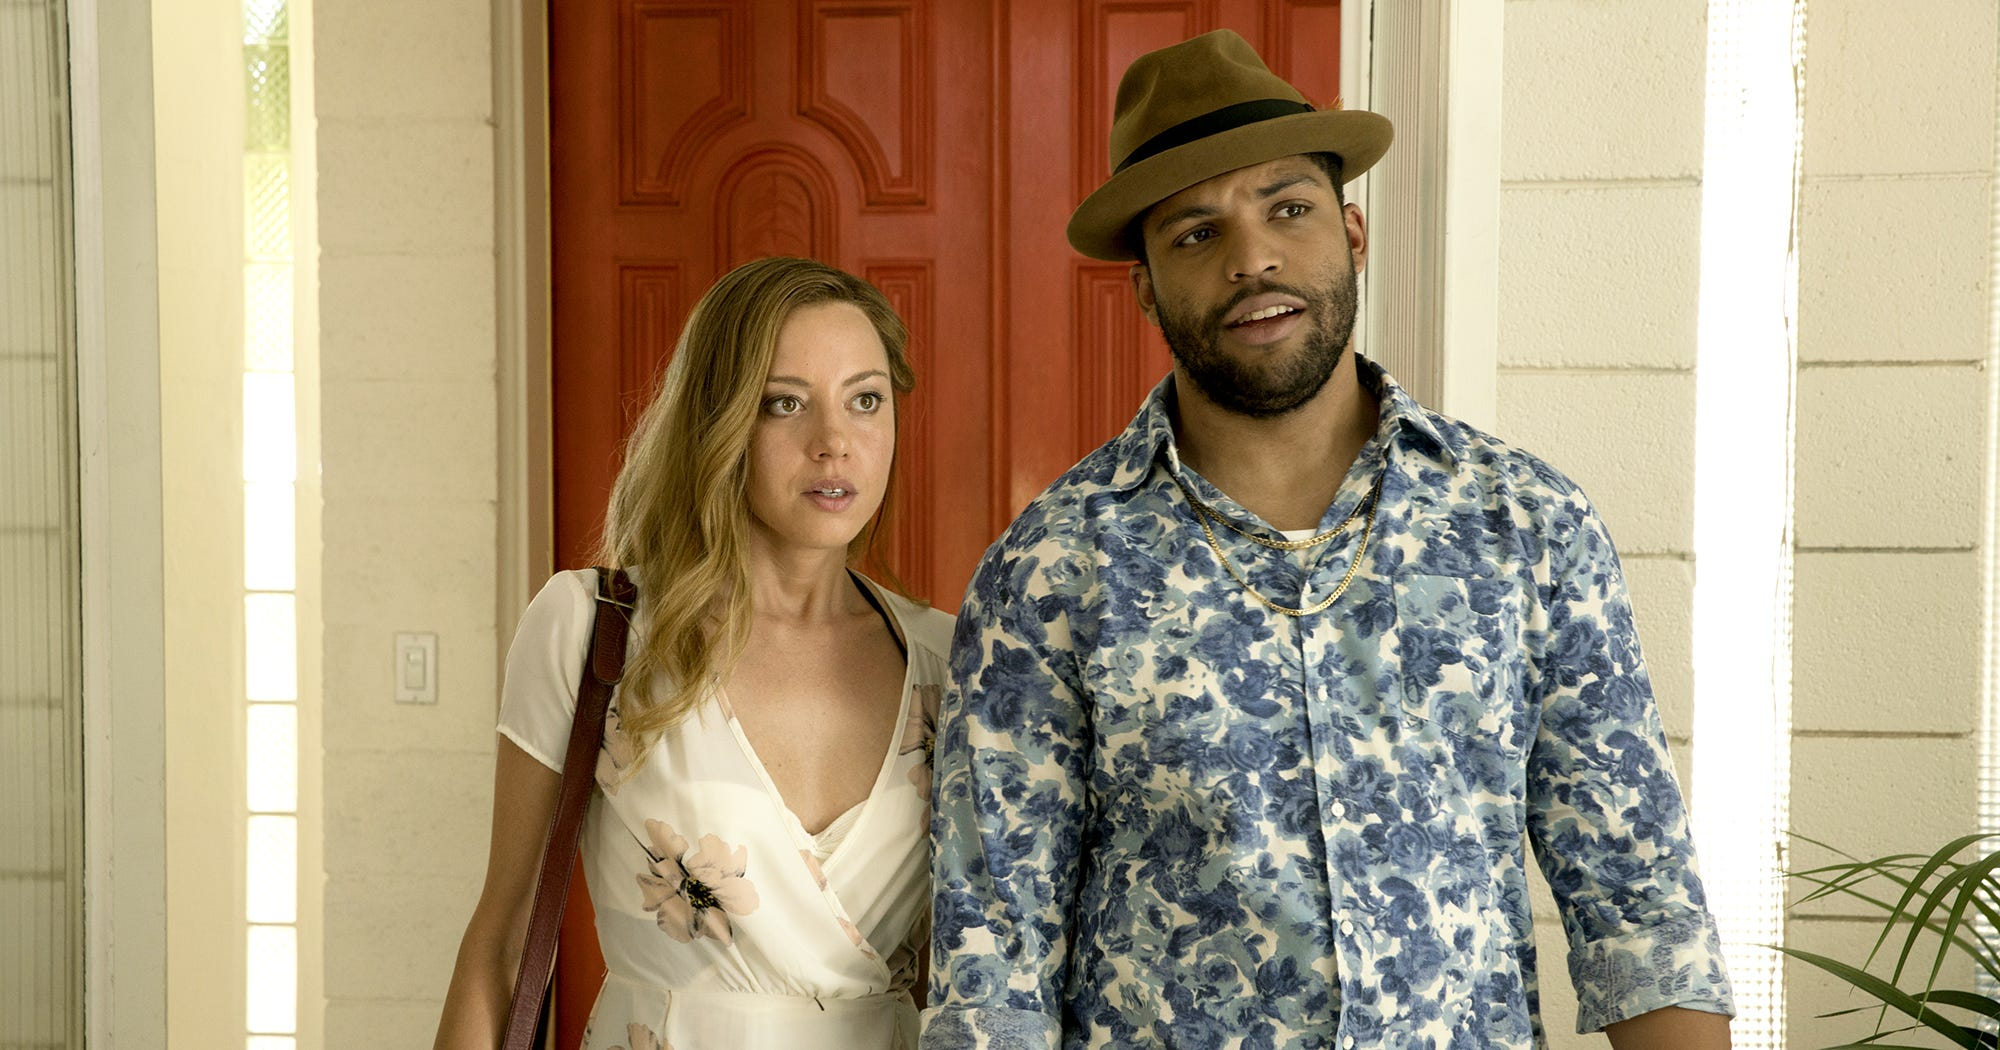 Interracial Couples Movies, TV Shows New Normal 2017